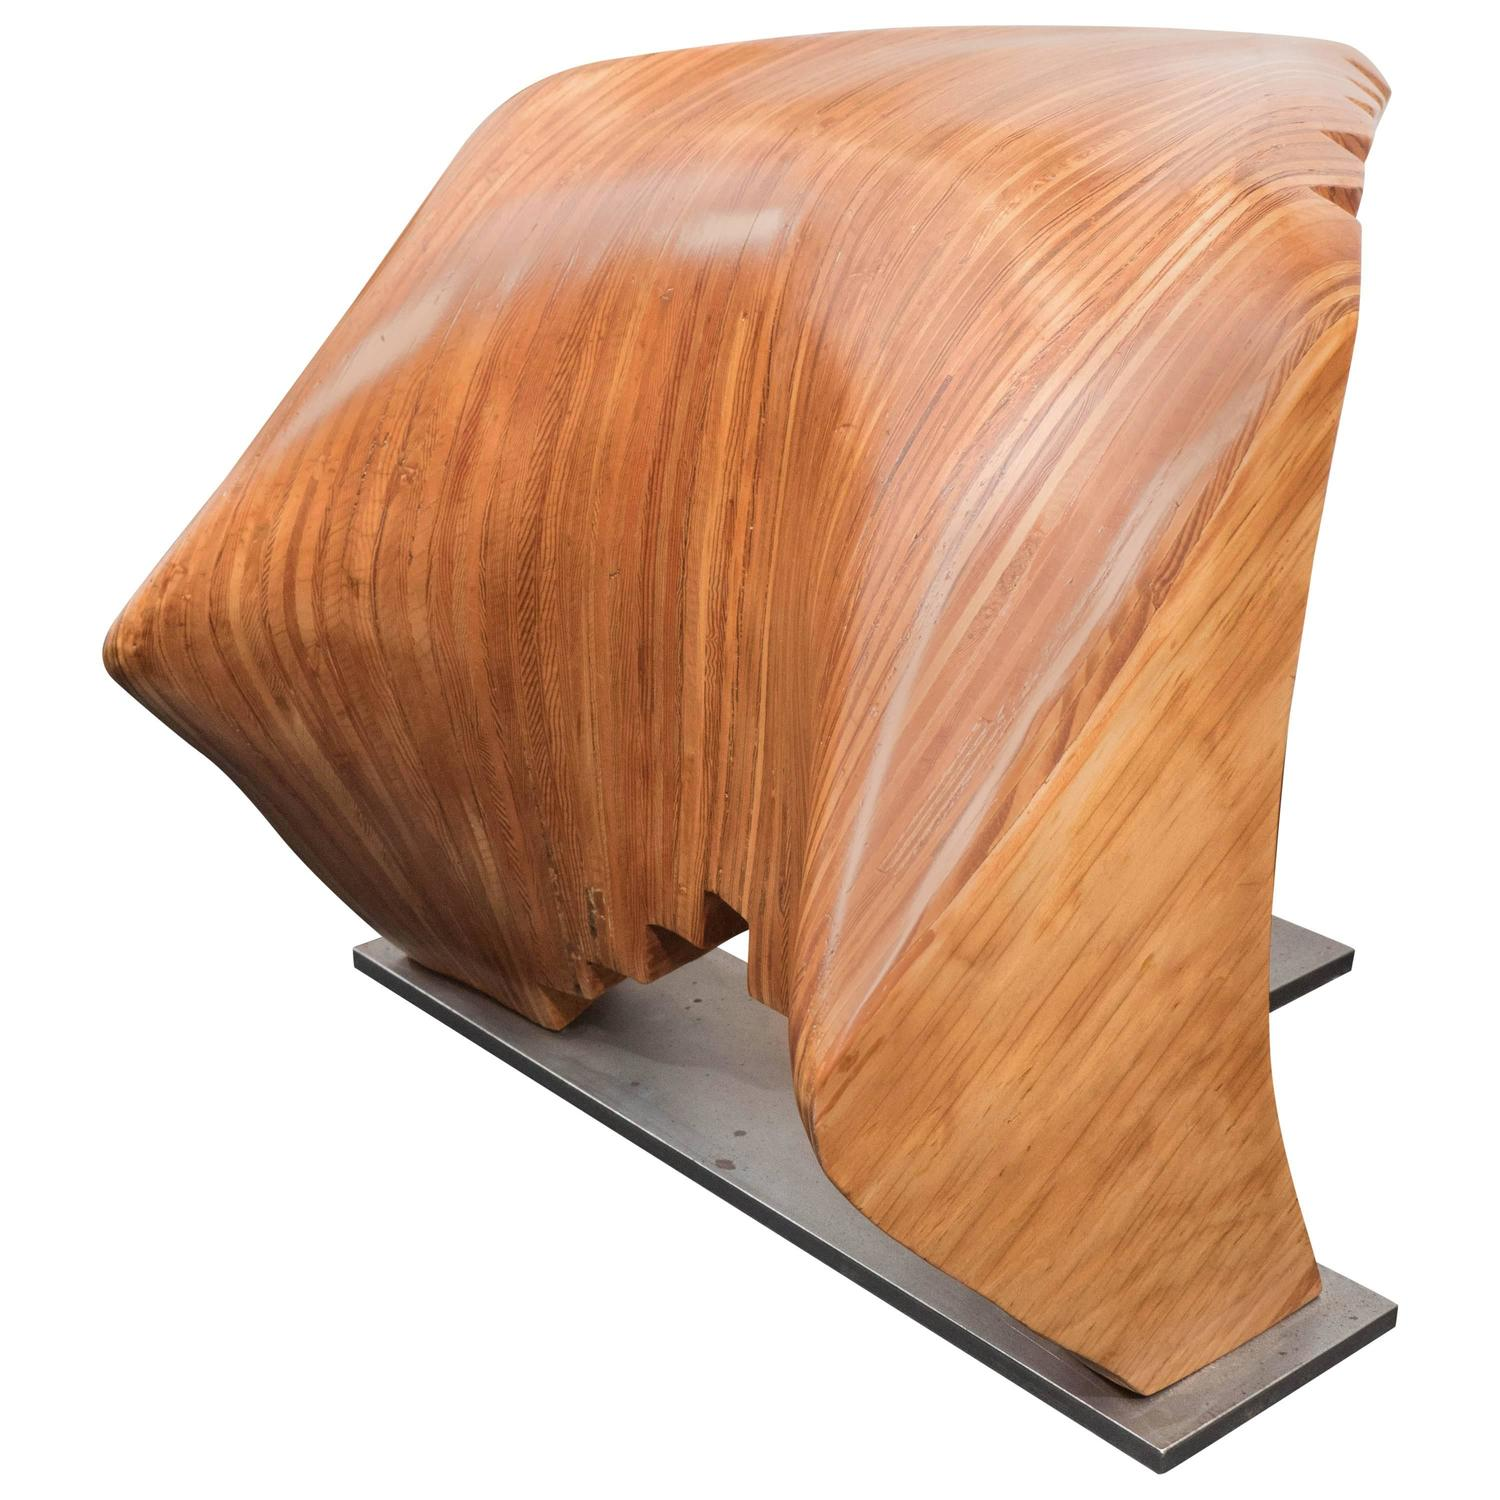 Sculptural Wooden Bench For Sale At 1stdibs